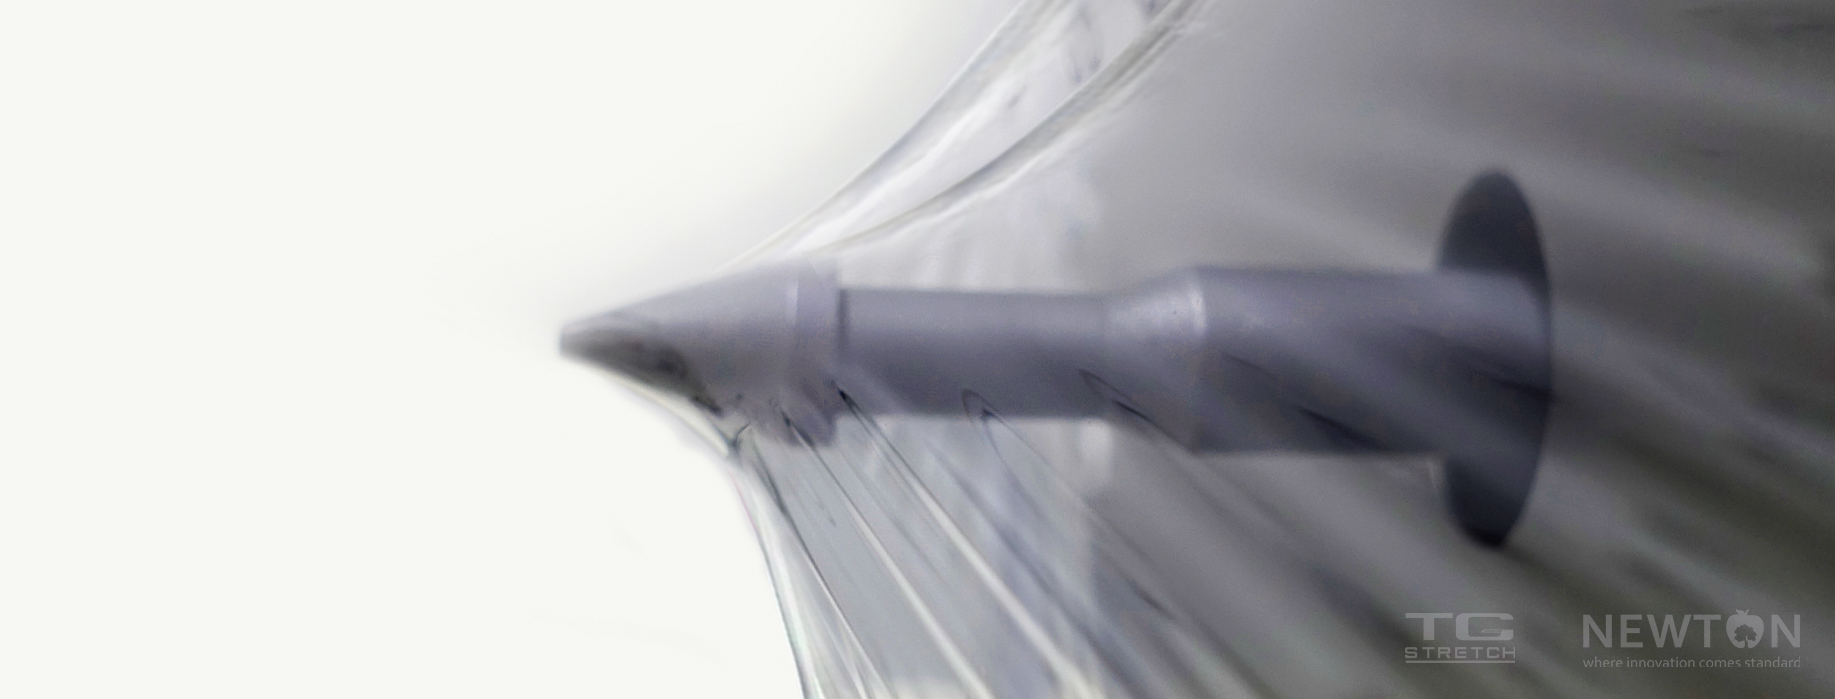 Recycled Plastics Films Thong Guan Plastic Mechanical-Properties-Stretch Film puncture test